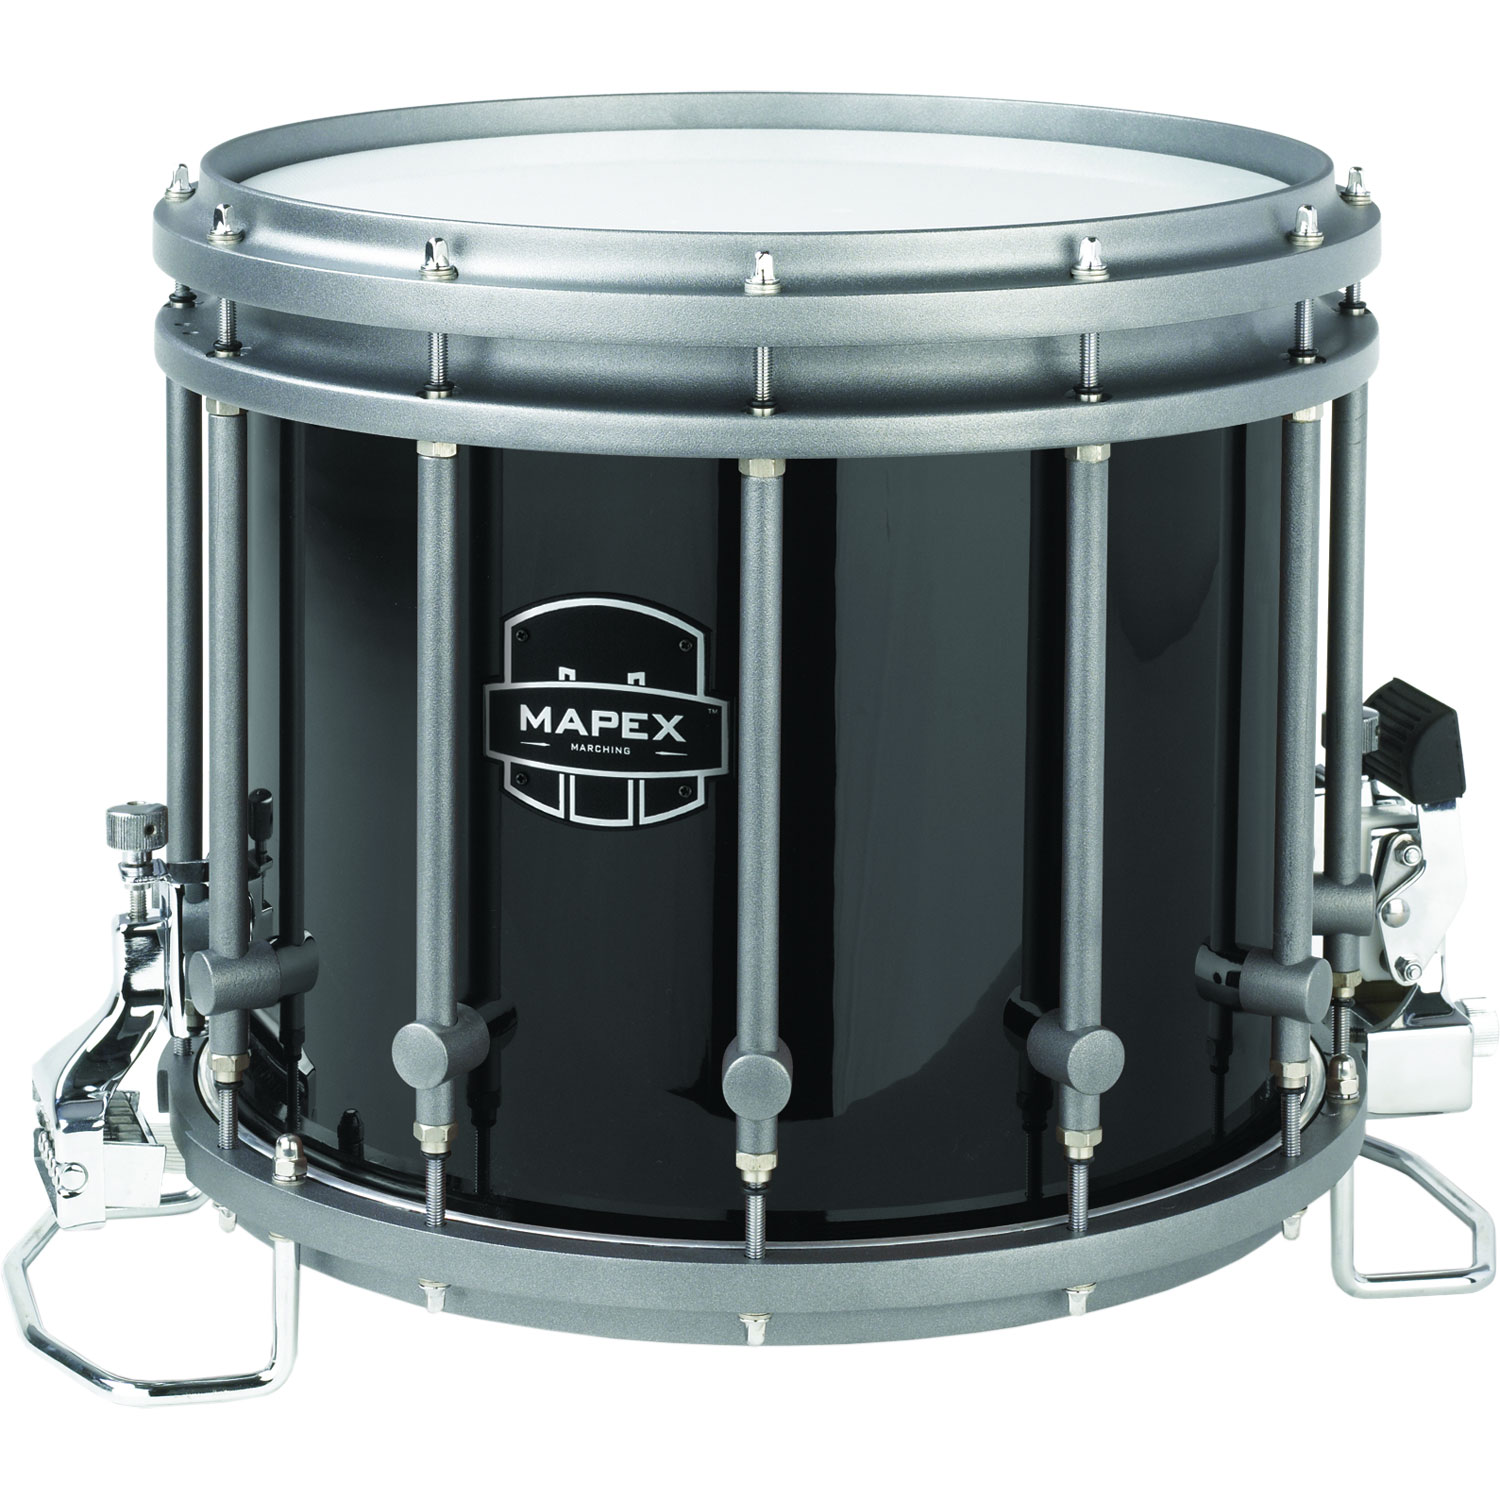 "Mapex 14"" (Diameter) x 12"" (Deep) Quantum XT Marching Snare Drum in Gloss Black"